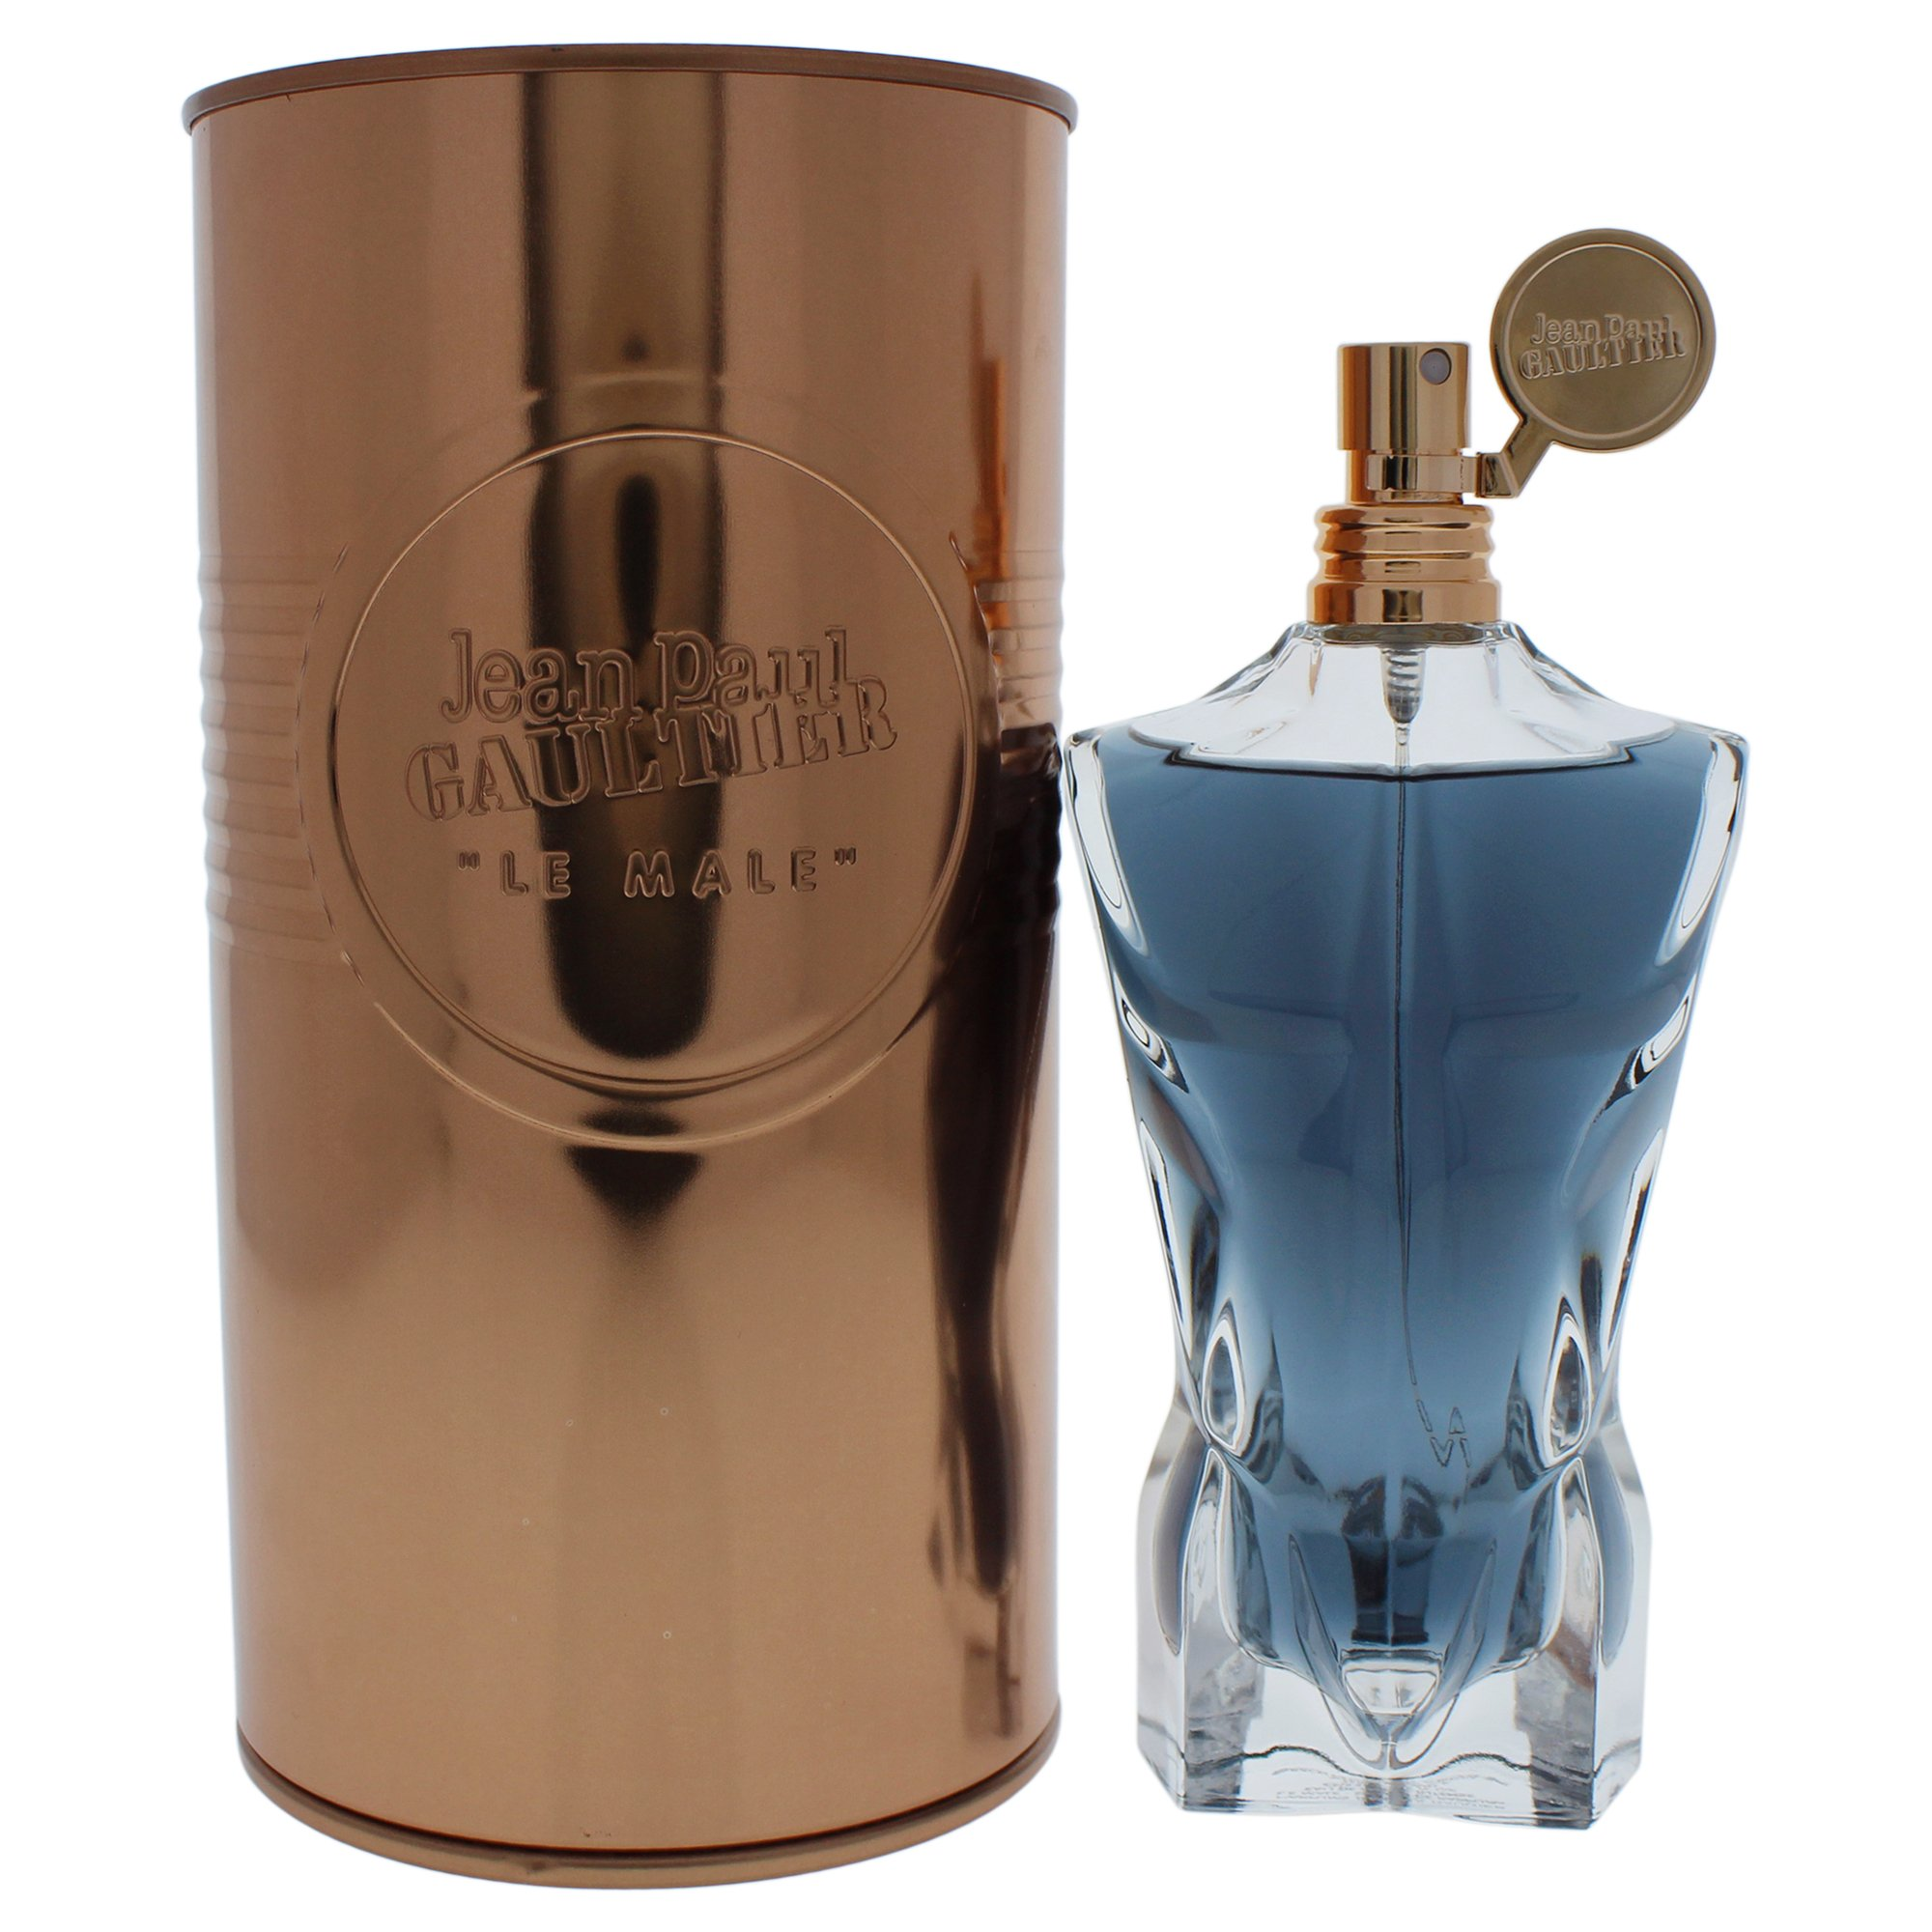 jean paul gaultier le male popeye eau fraiche eau de toilette spray 125ml